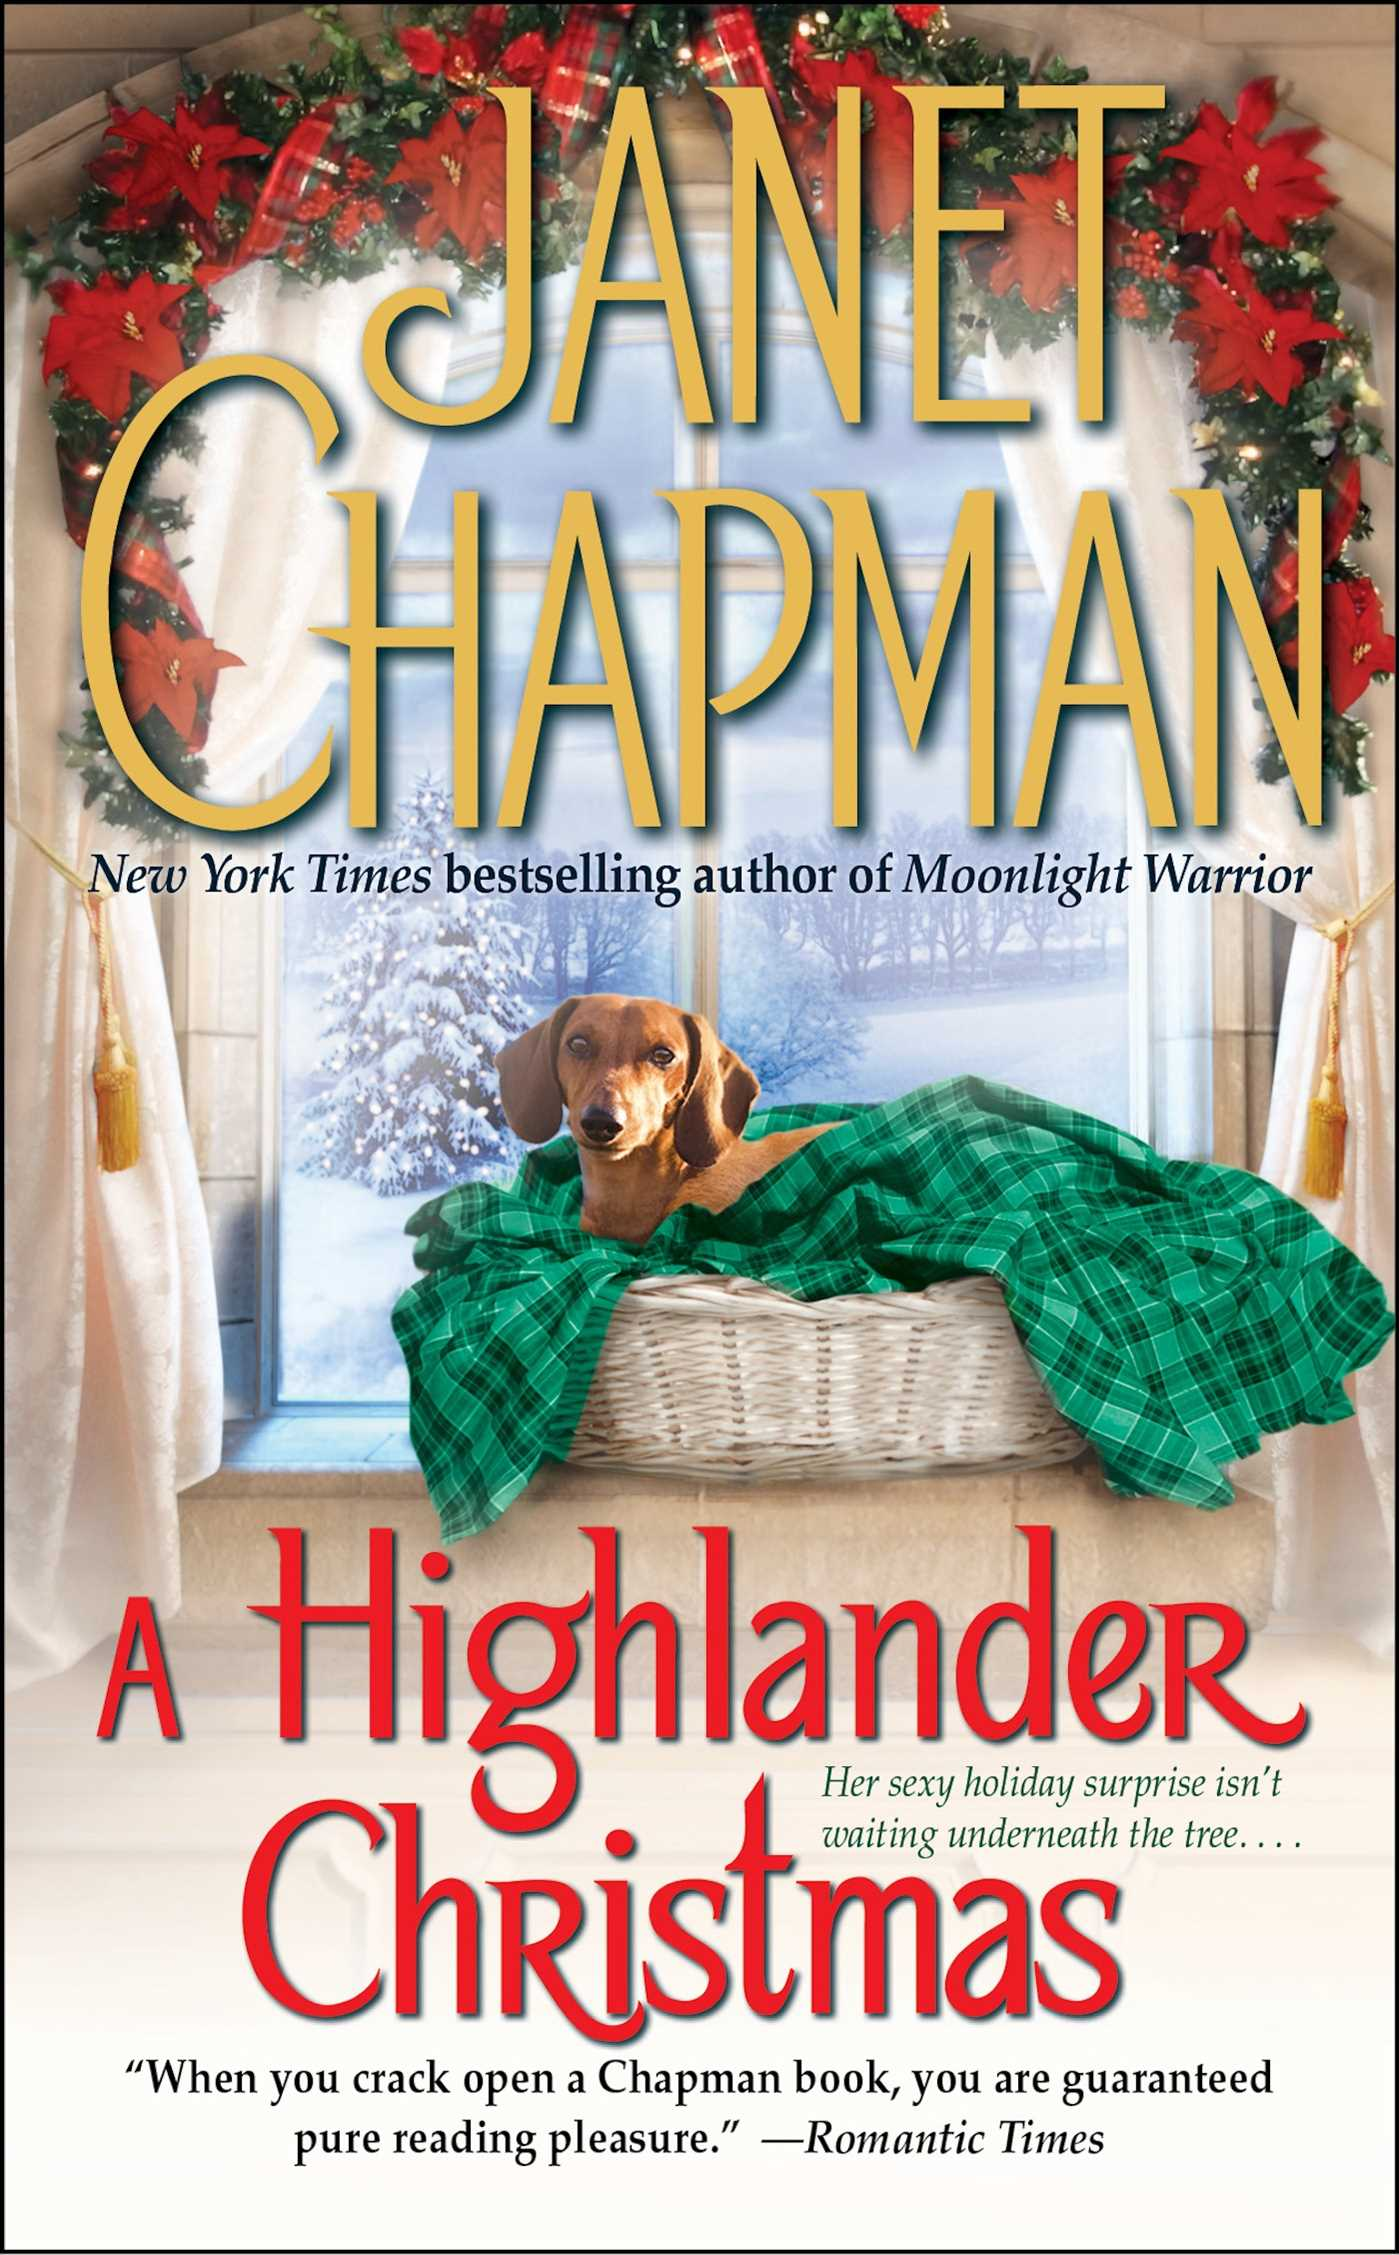 A highlander christmas ebook by janet chapman official publisher book cover image jpg a highlander christmas ebook 9781439166840 fandeluxe Choice Image